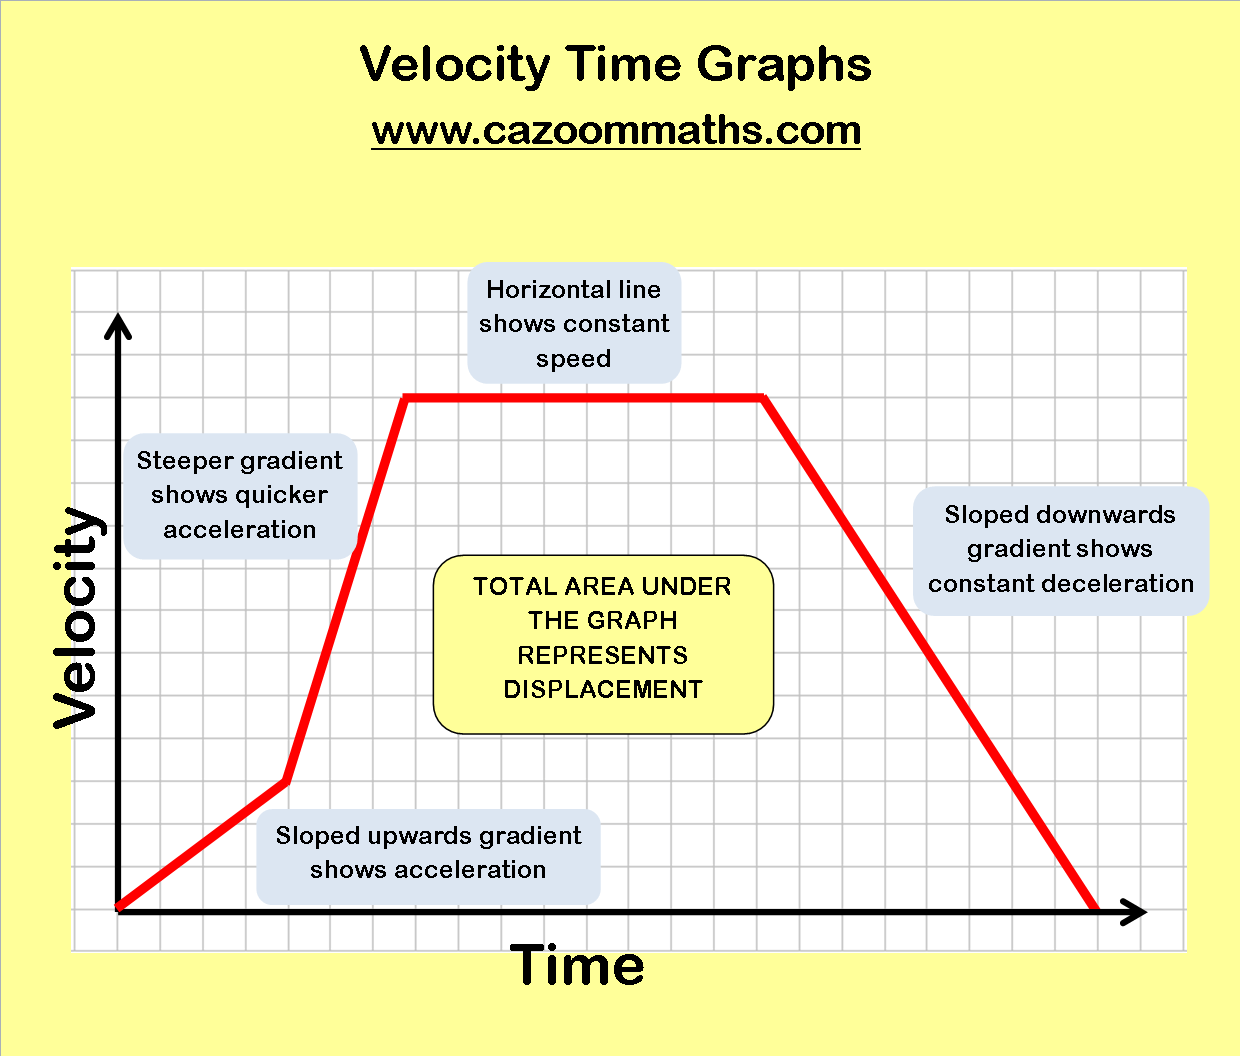 Worksheets Velocity Time Graphs Questions And Answers Pdf real life graphs cazoom maths worksheets velocity time graphs